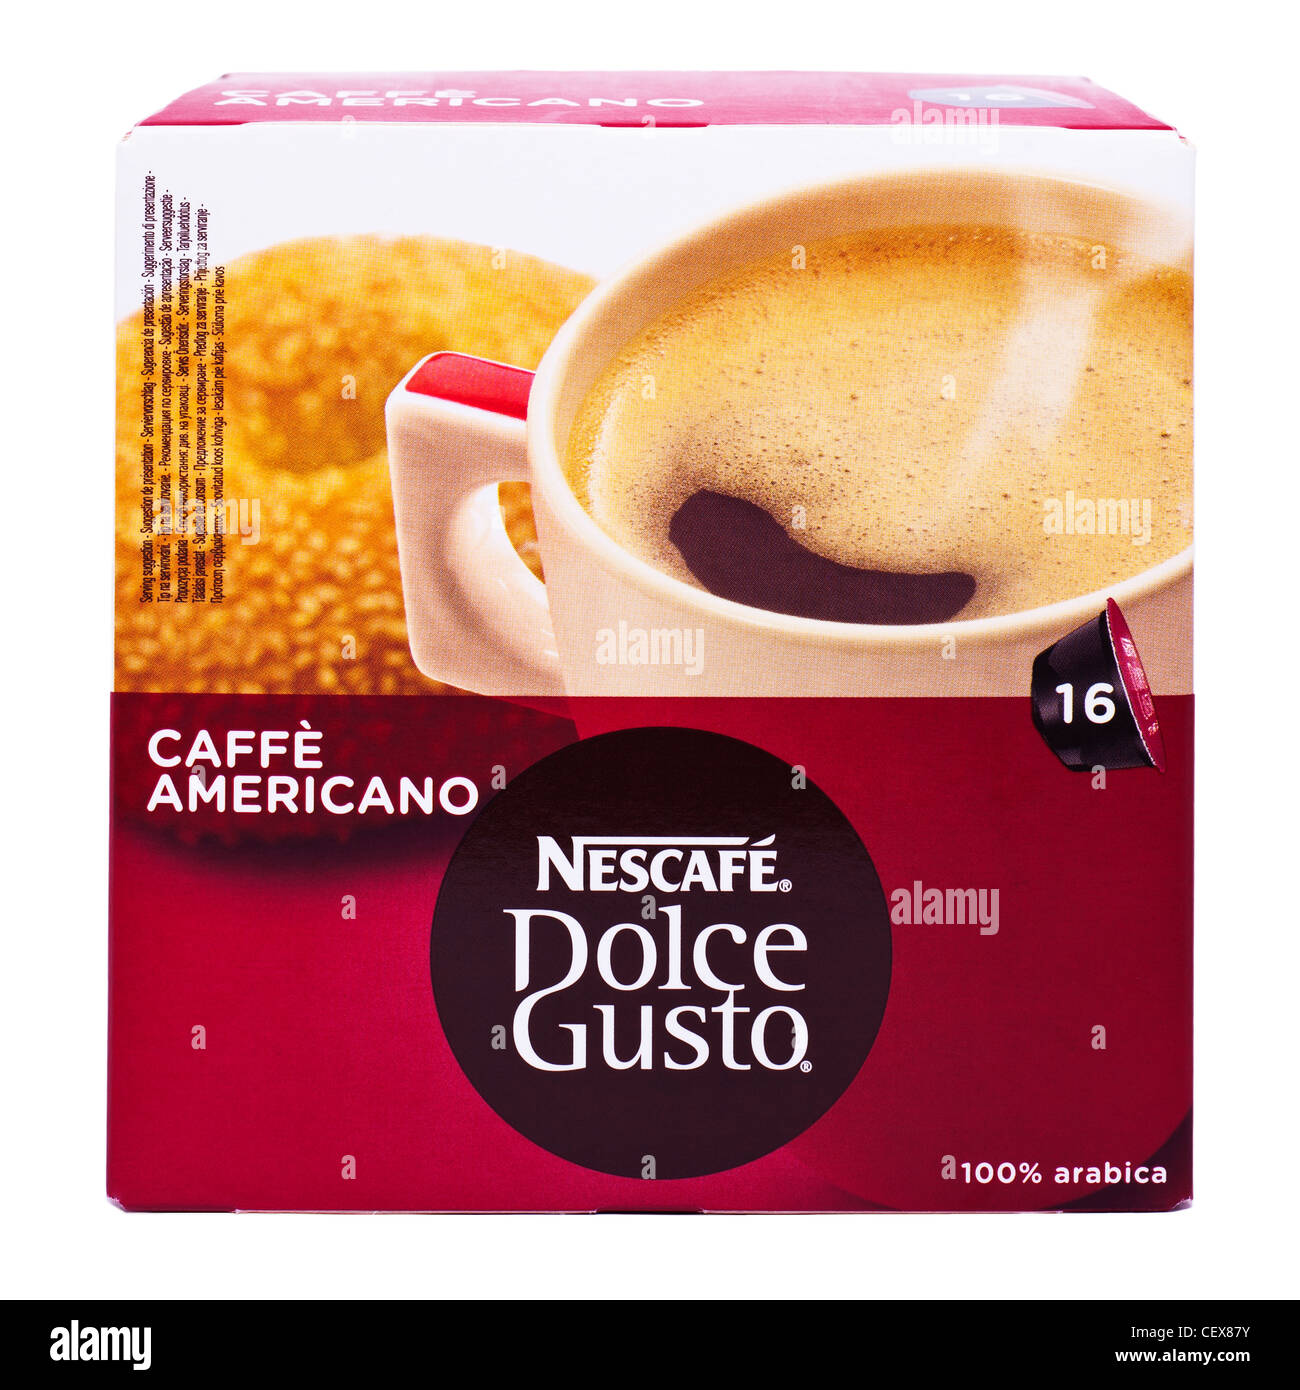 Americano Coffee English A Box Of Nescafe Dolce Gusto Cafe Americano Coffee Pods